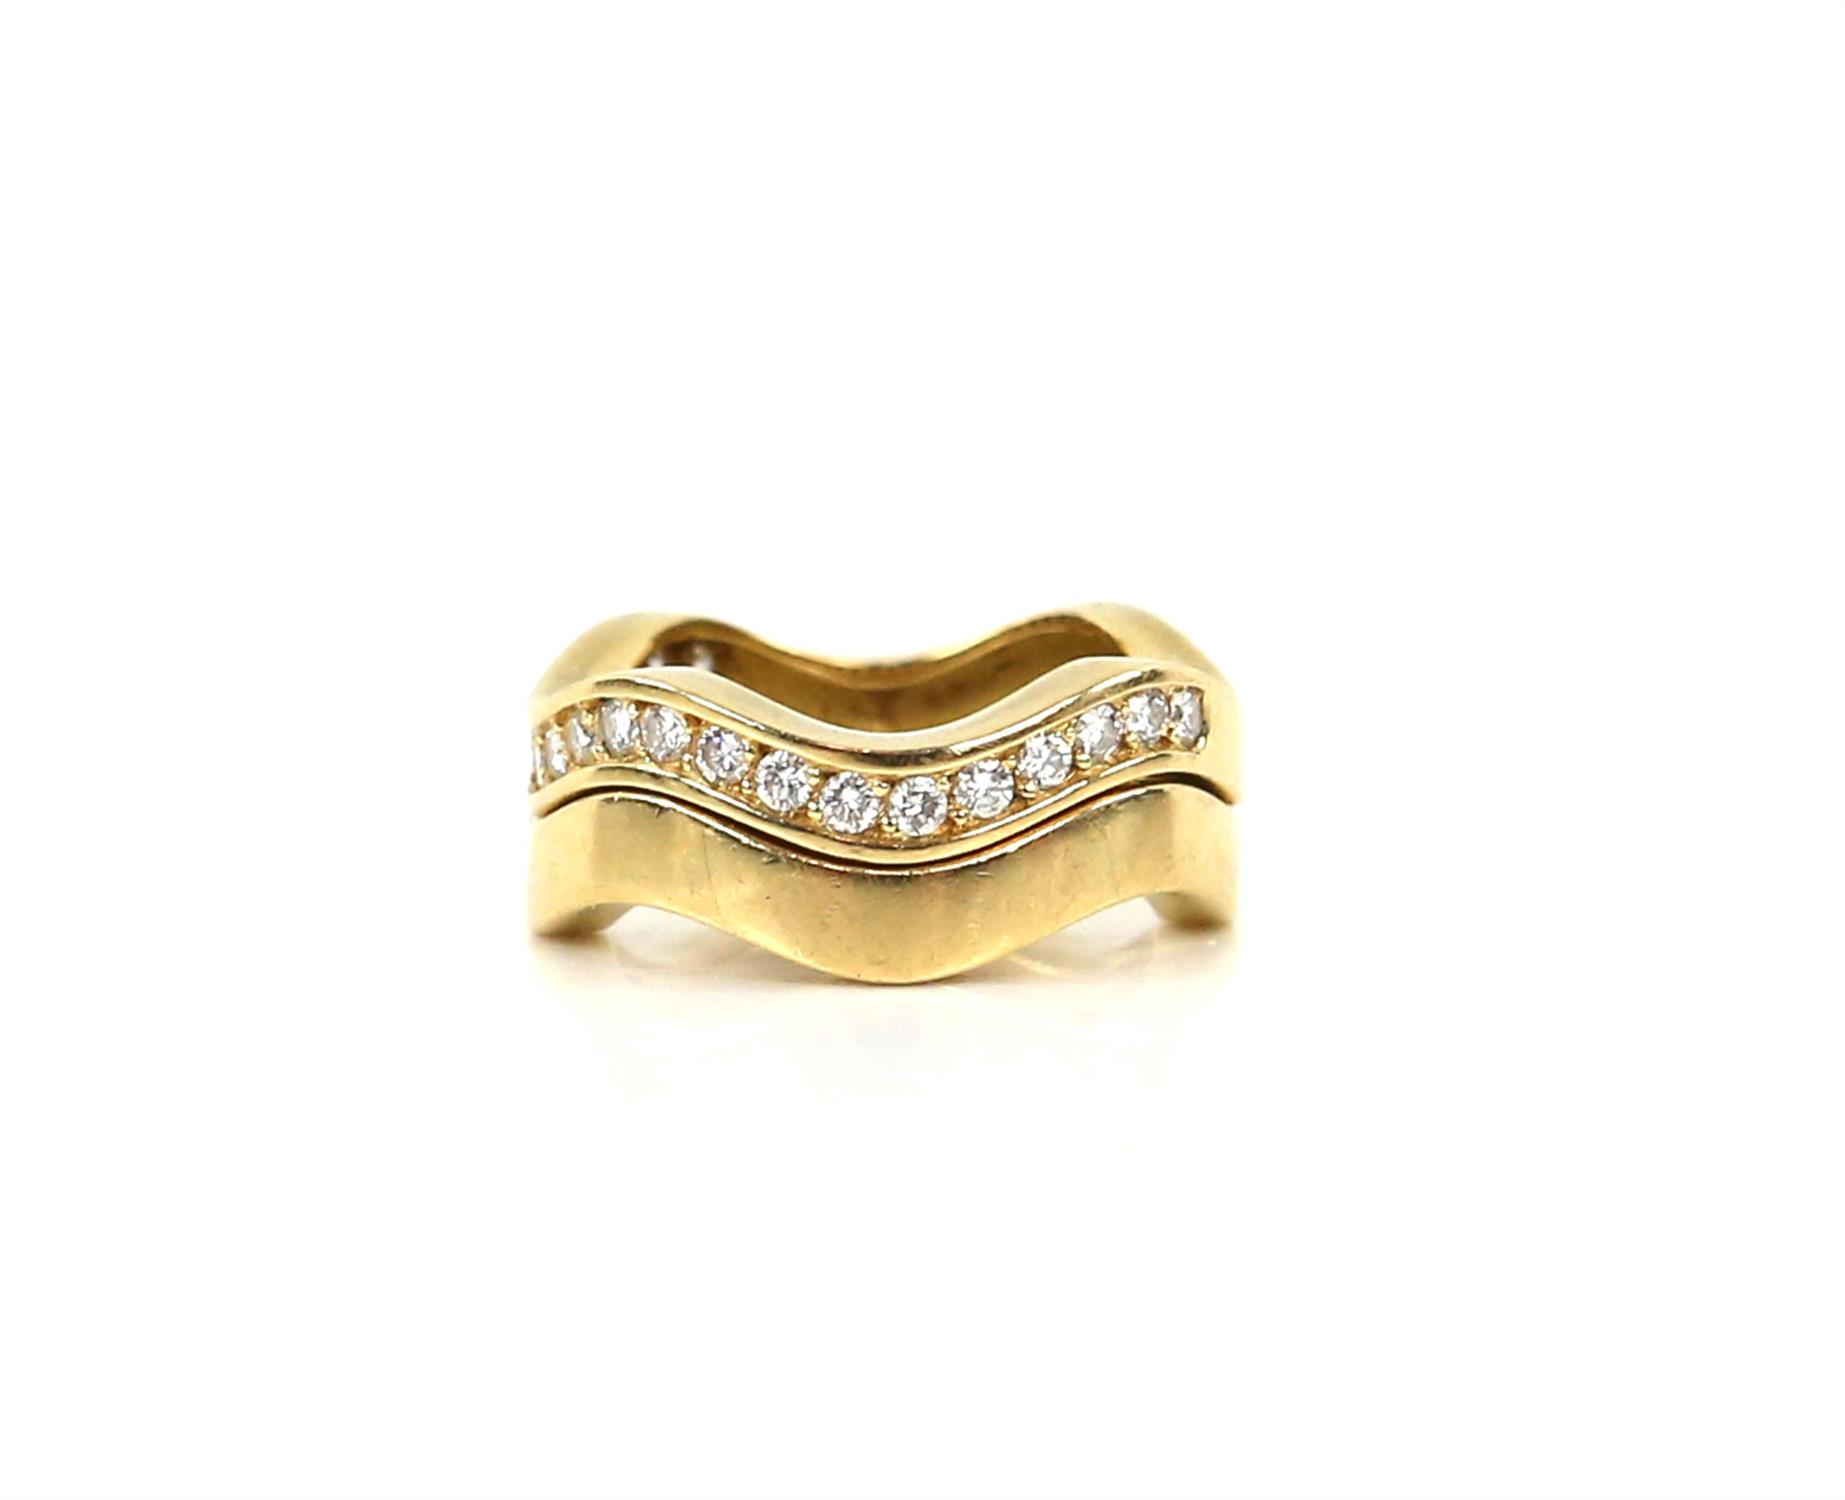 Two Cartier ring stacking wave rings, one diamond set with round brilliant cut diamonds,